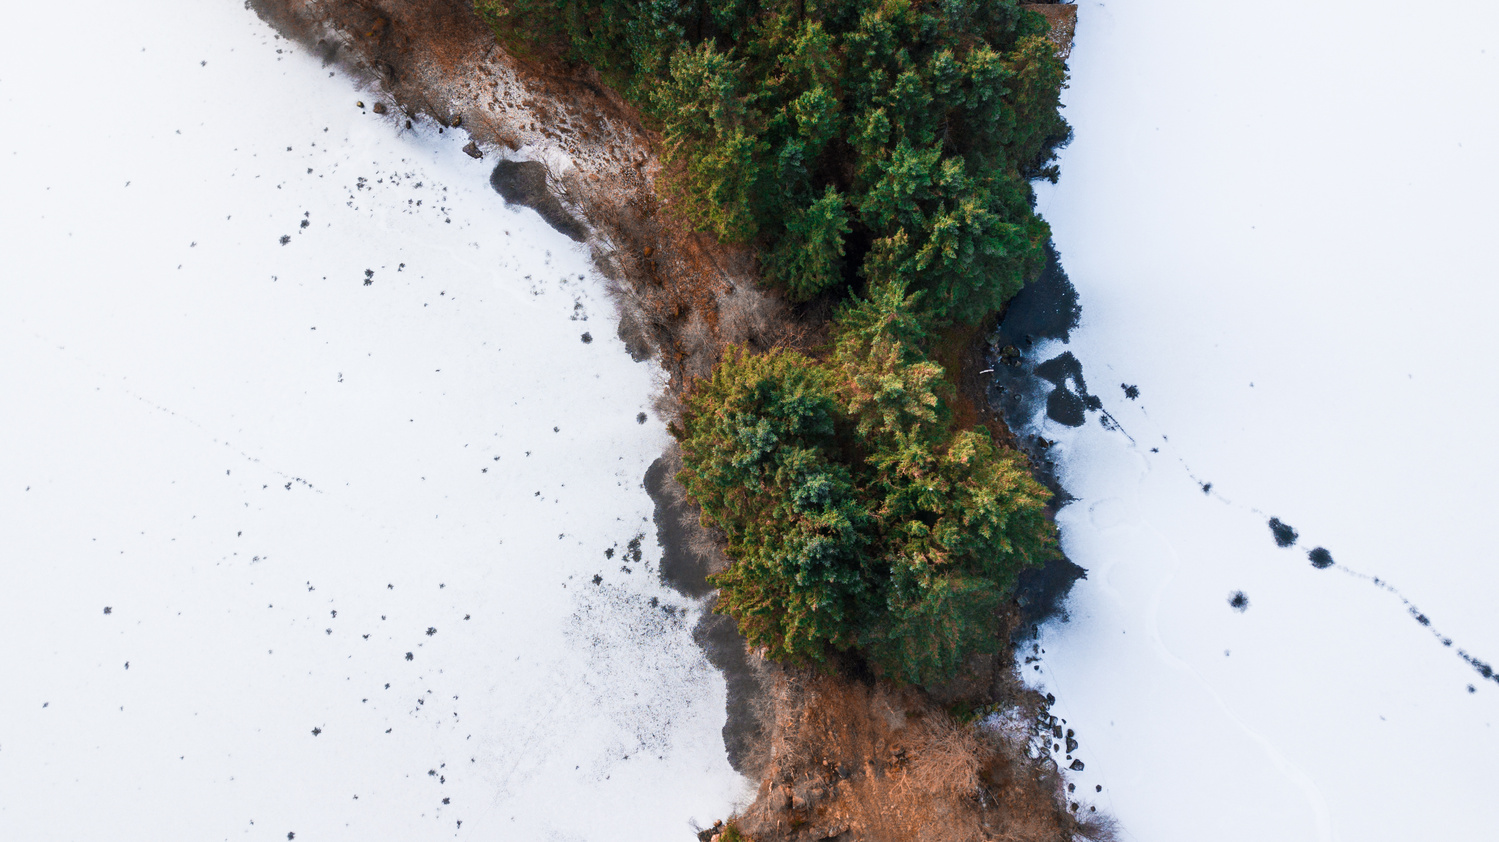 Top down photo of abstract nature by Peder Kongshaug